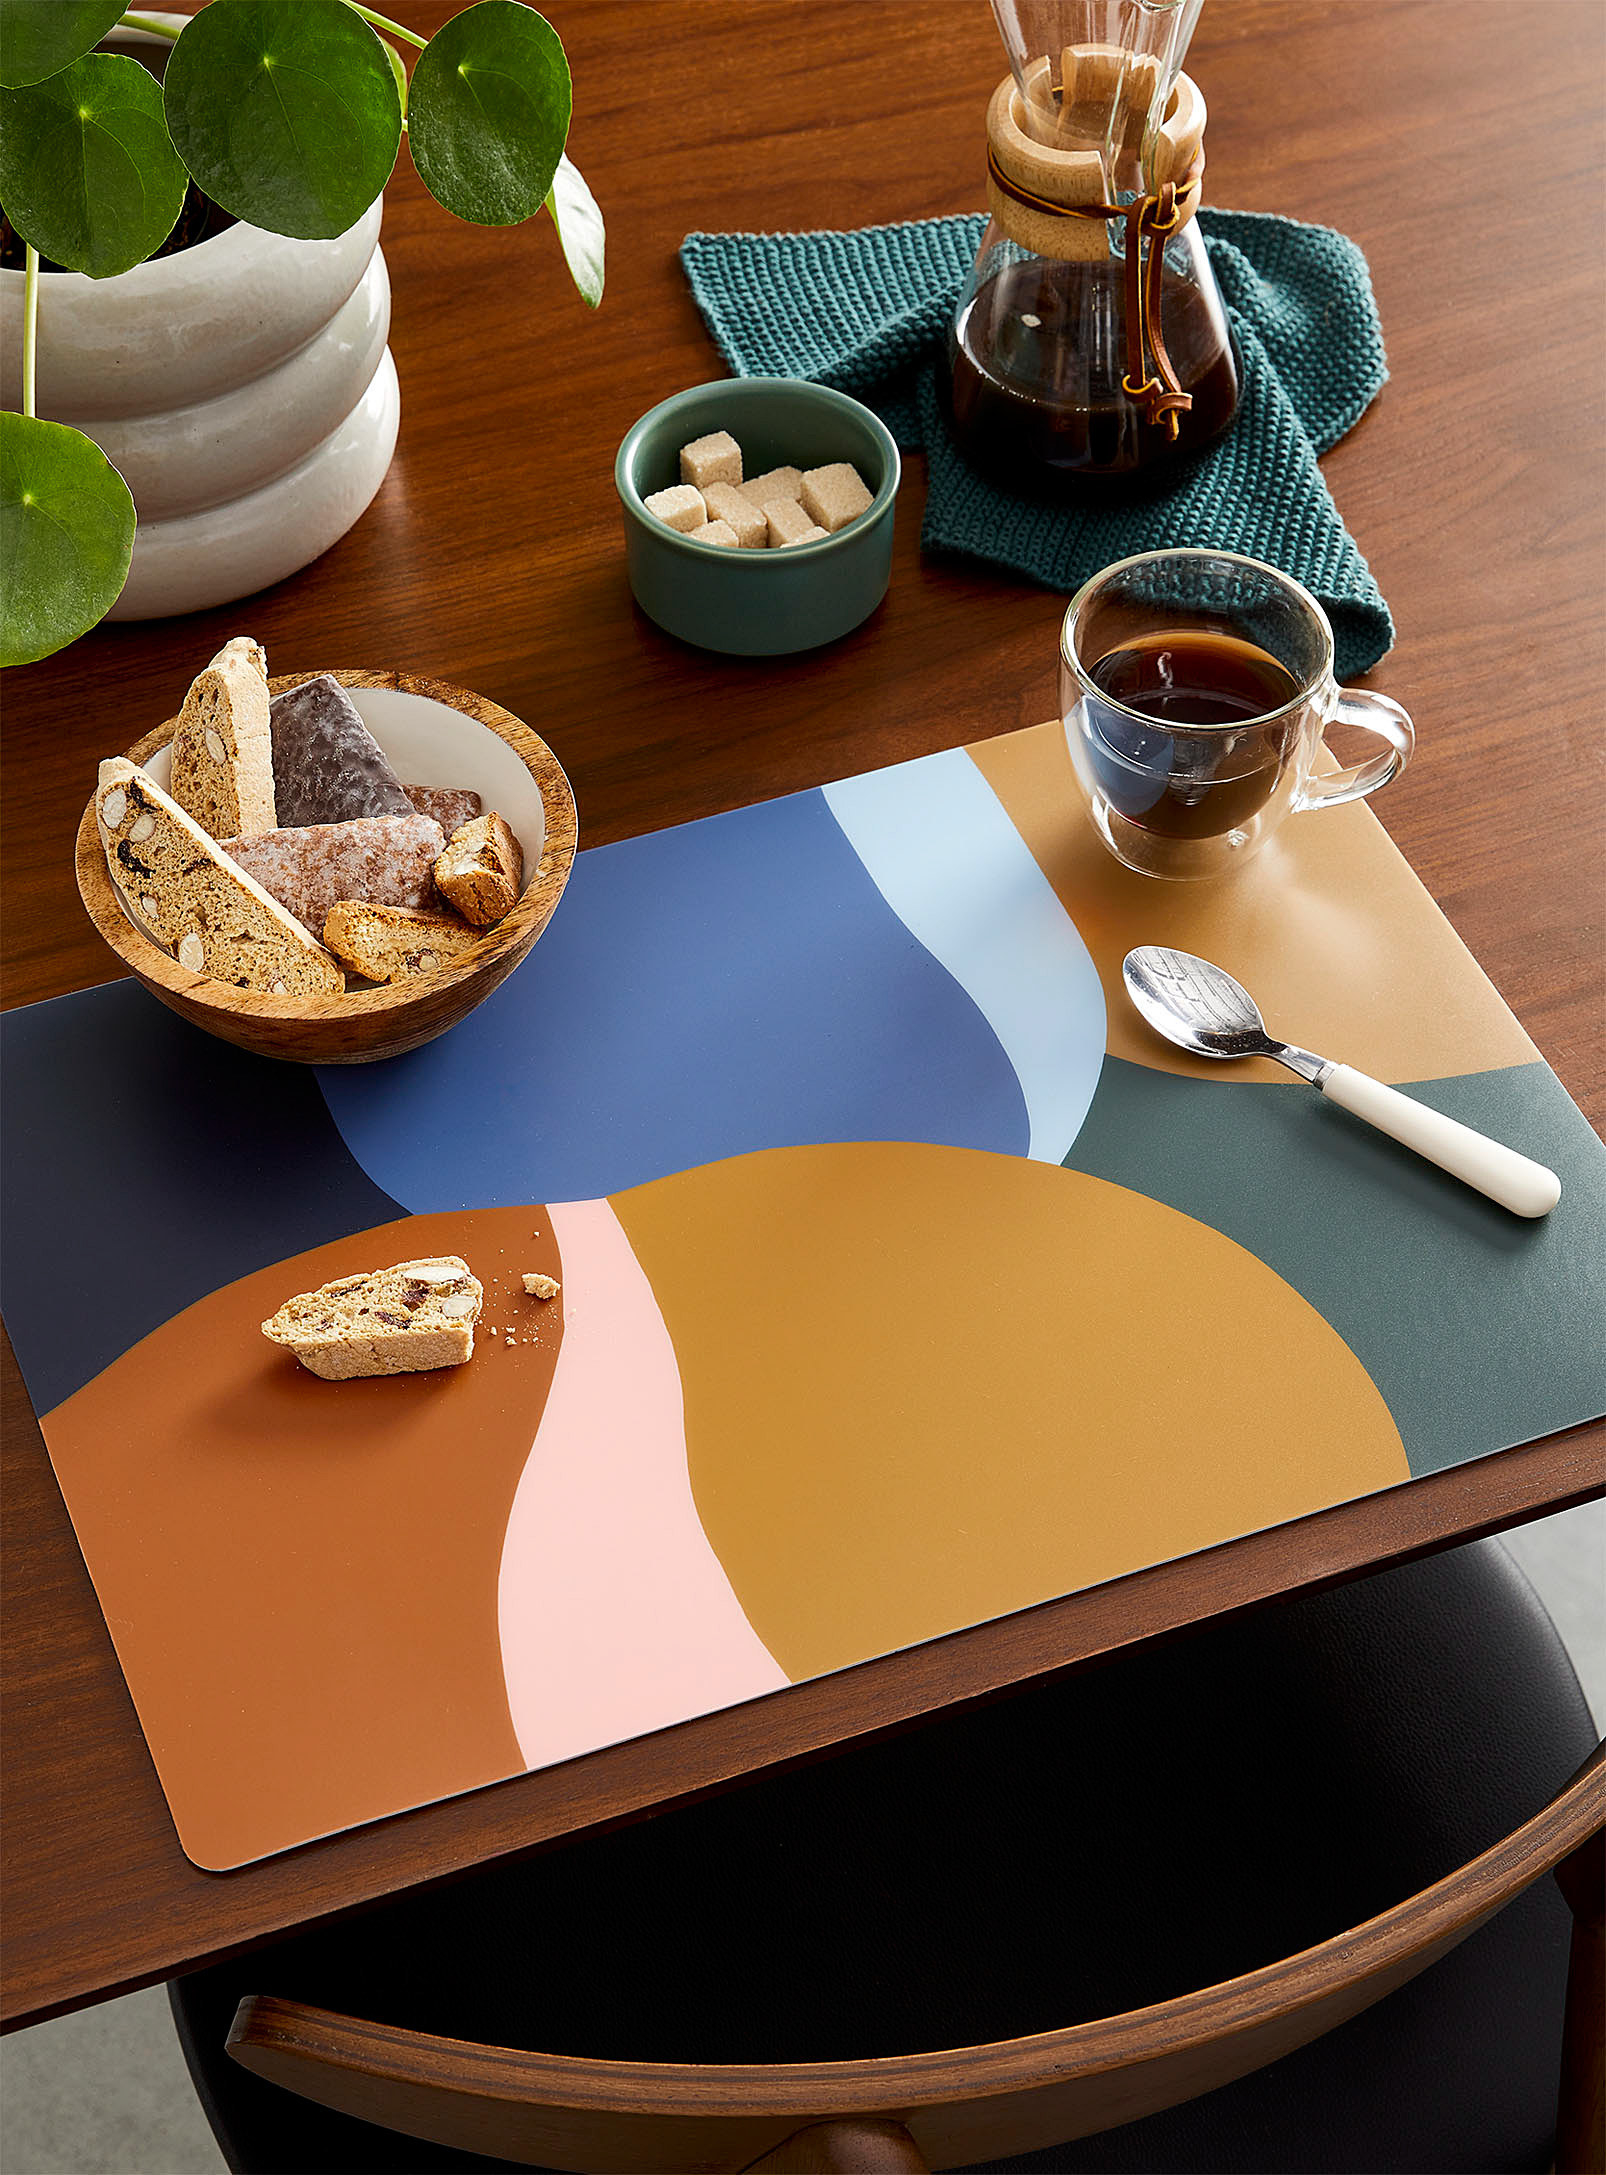 a colourful placemat on a table